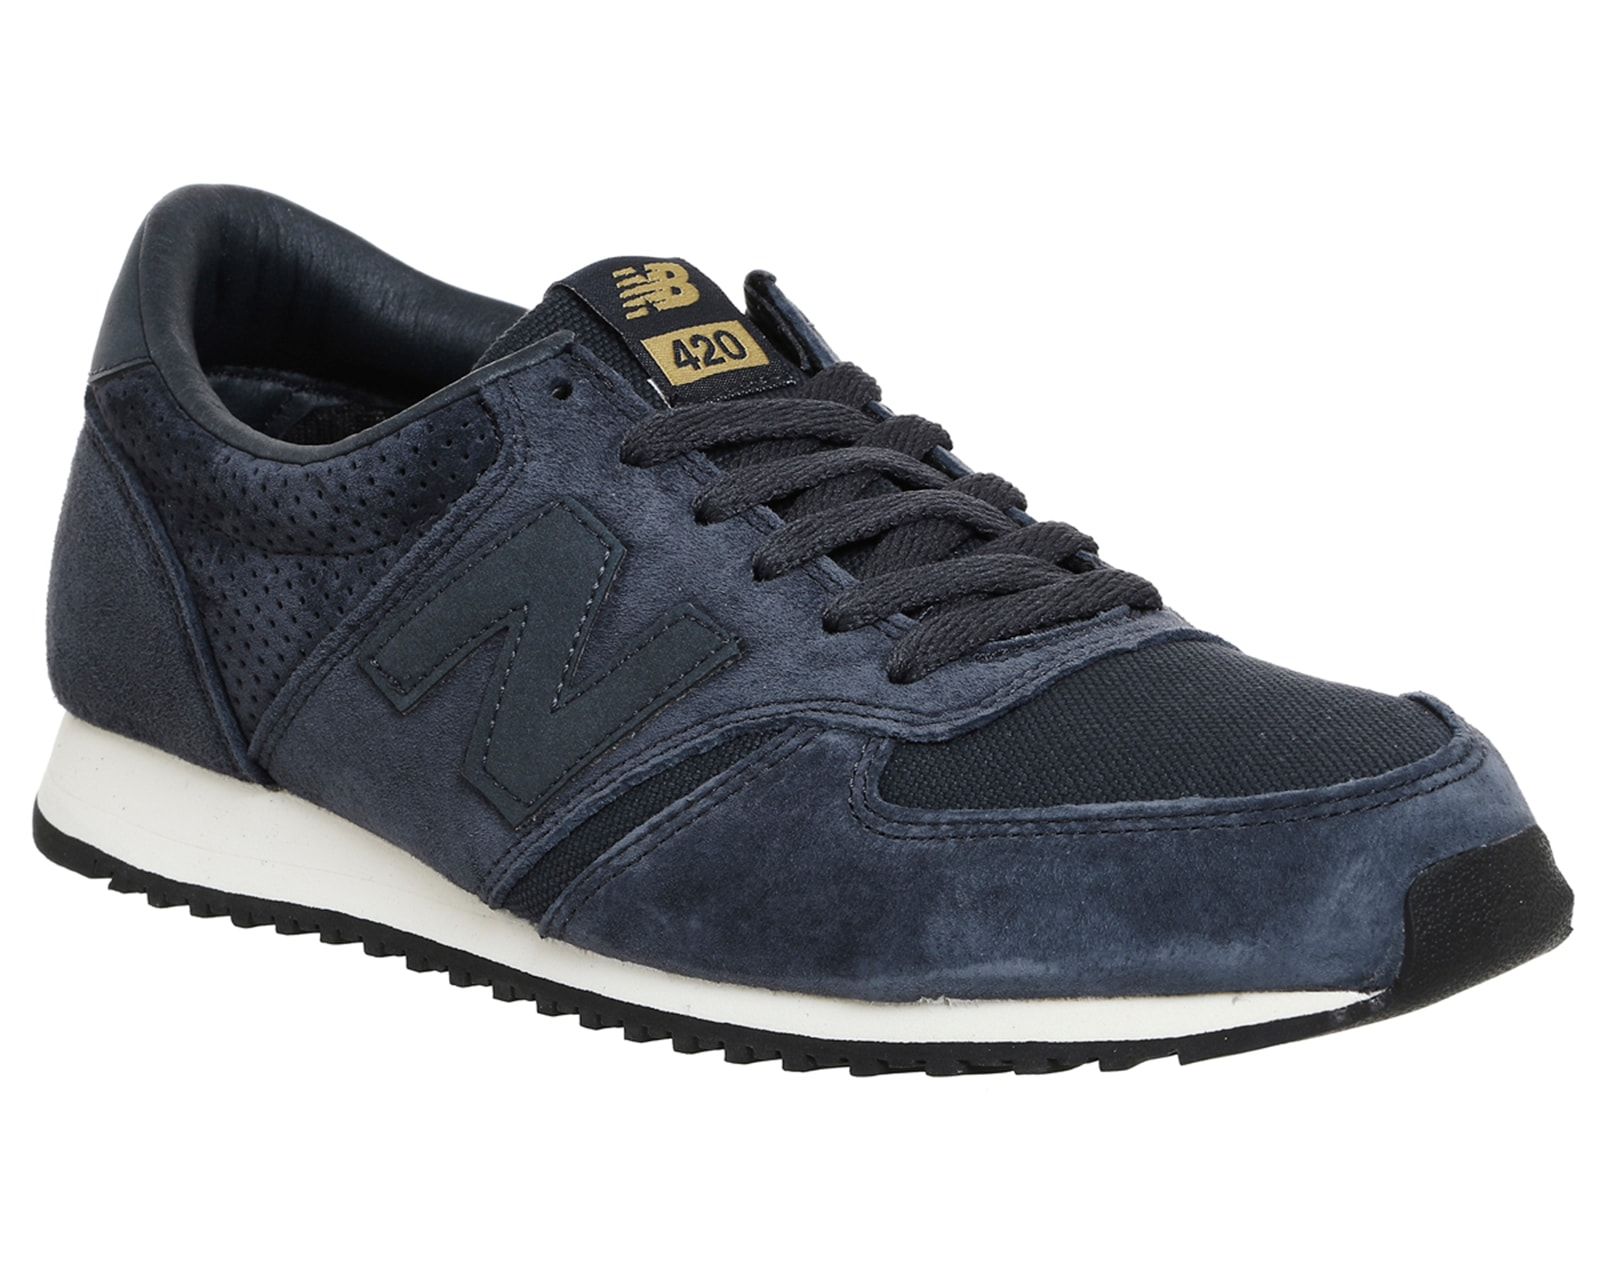 mens new balance u420 navy gold trainers shoes ebay. Black Bedroom Furniture Sets. Home Design Ideas